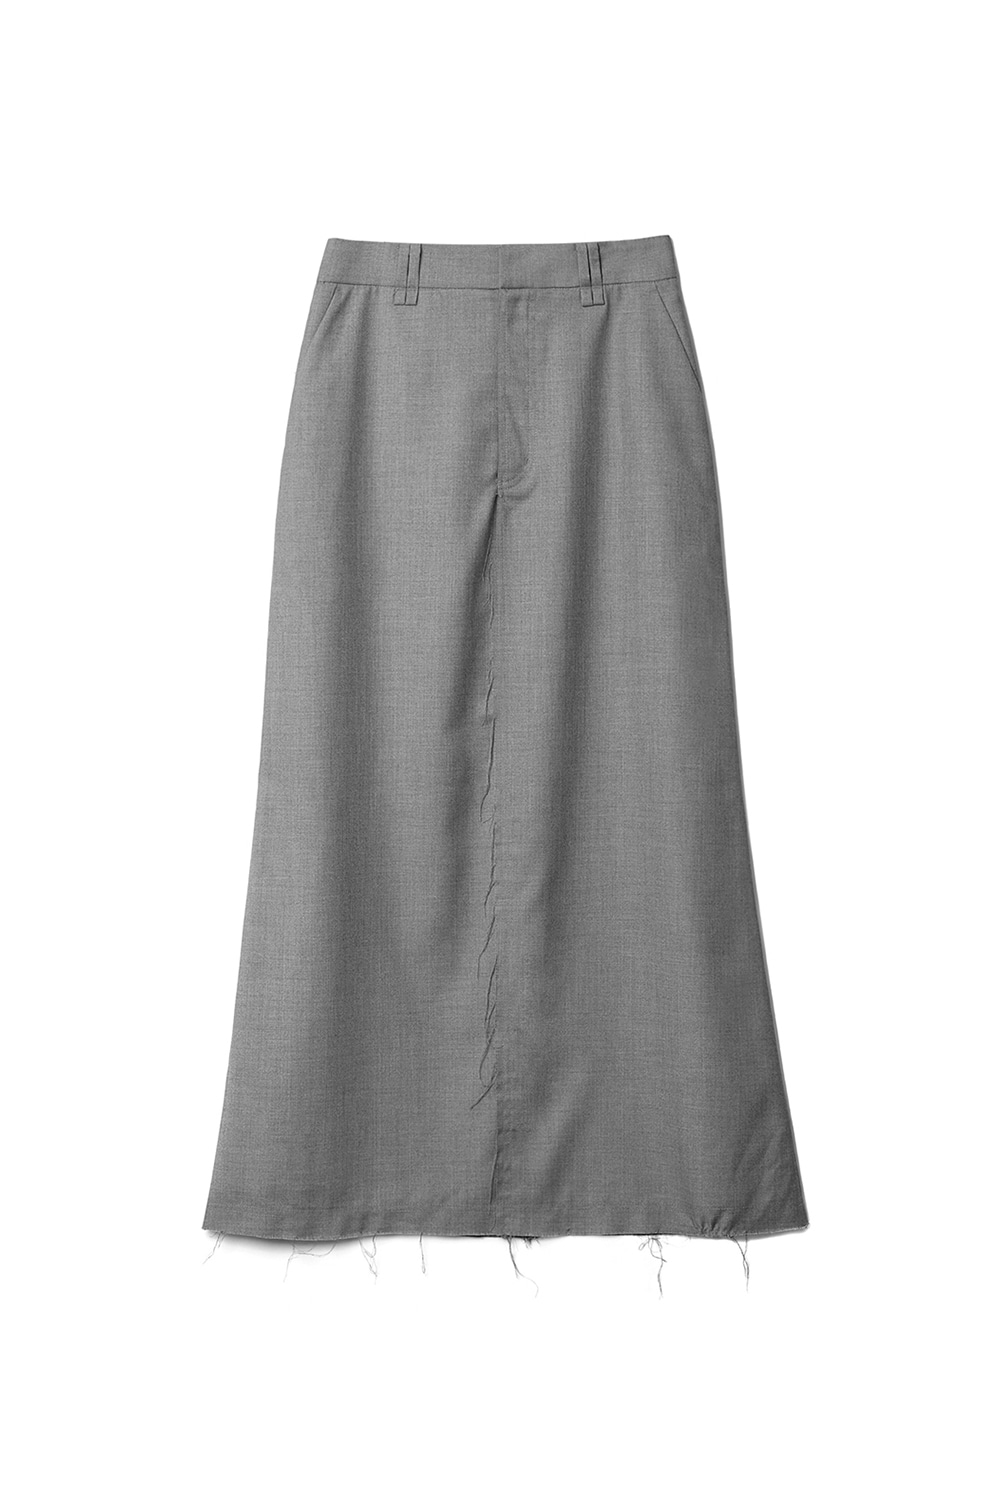 Damage Pocket Skirts Women [Gray]